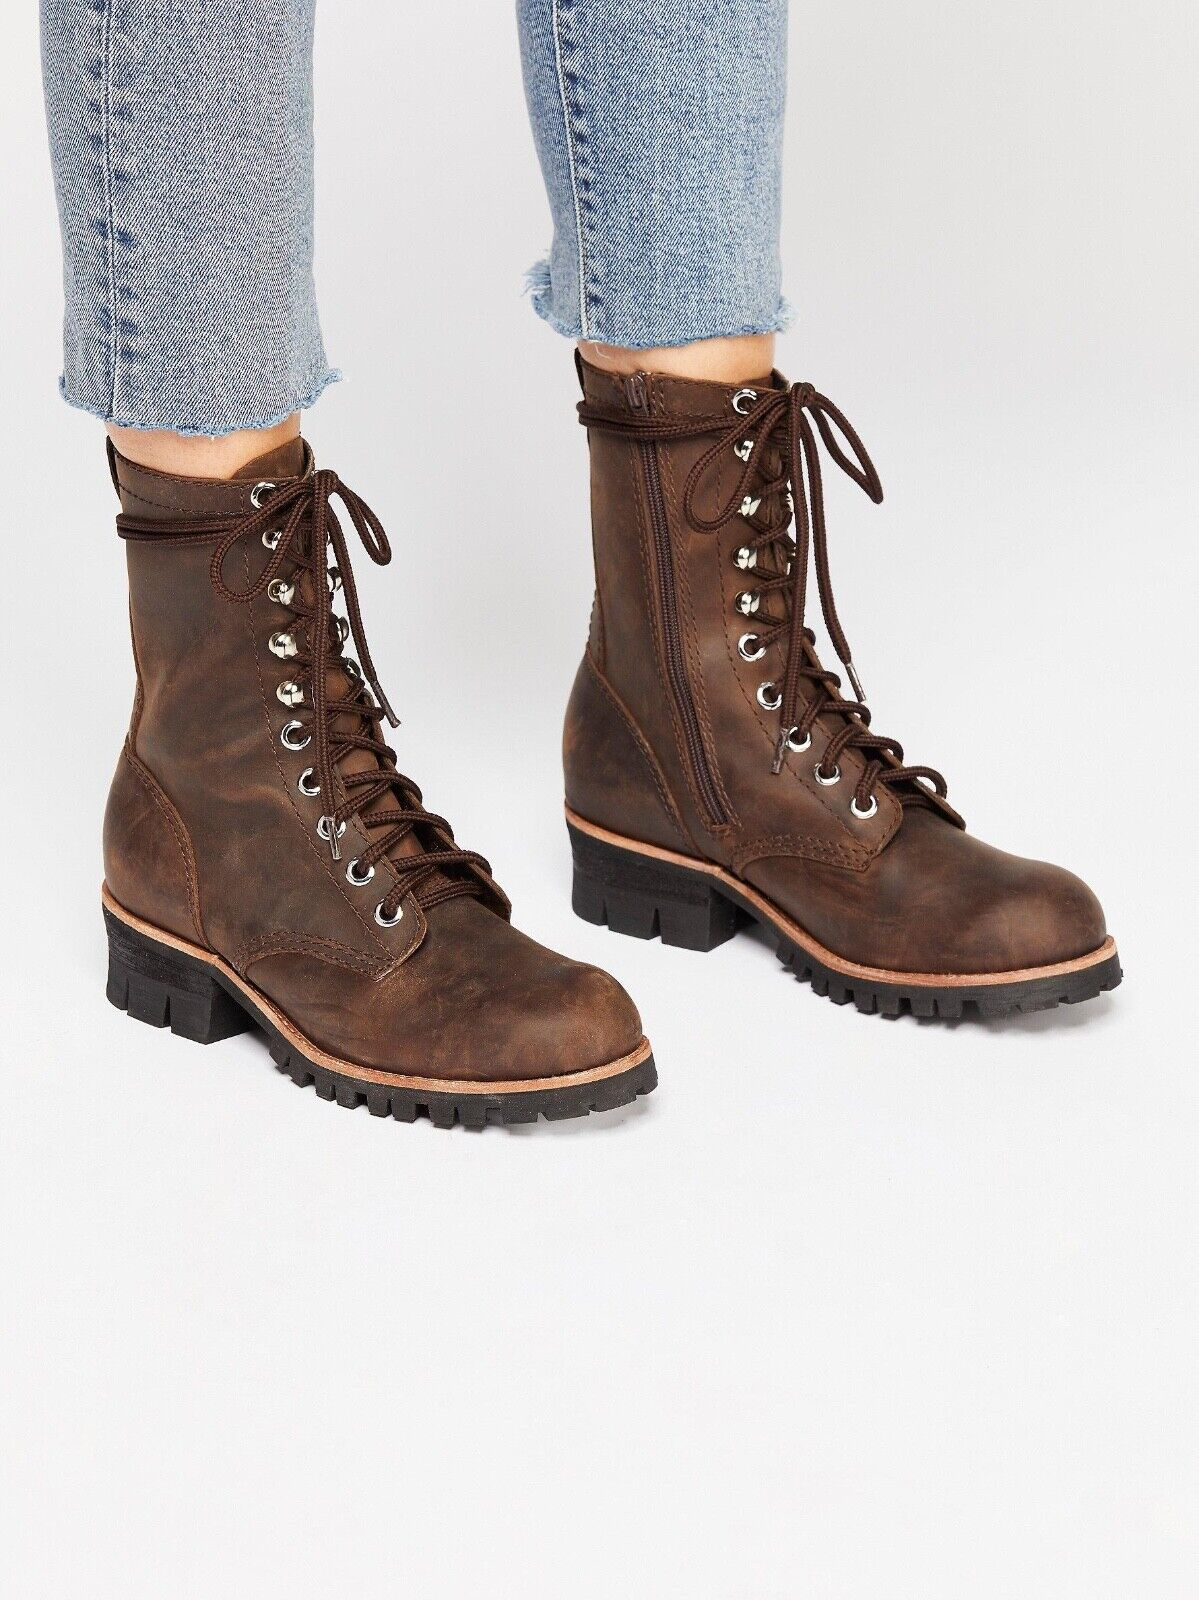 Free People Jeffrey Campbell Lucca Lace Up Brown Leather Work Boot Size 9 New